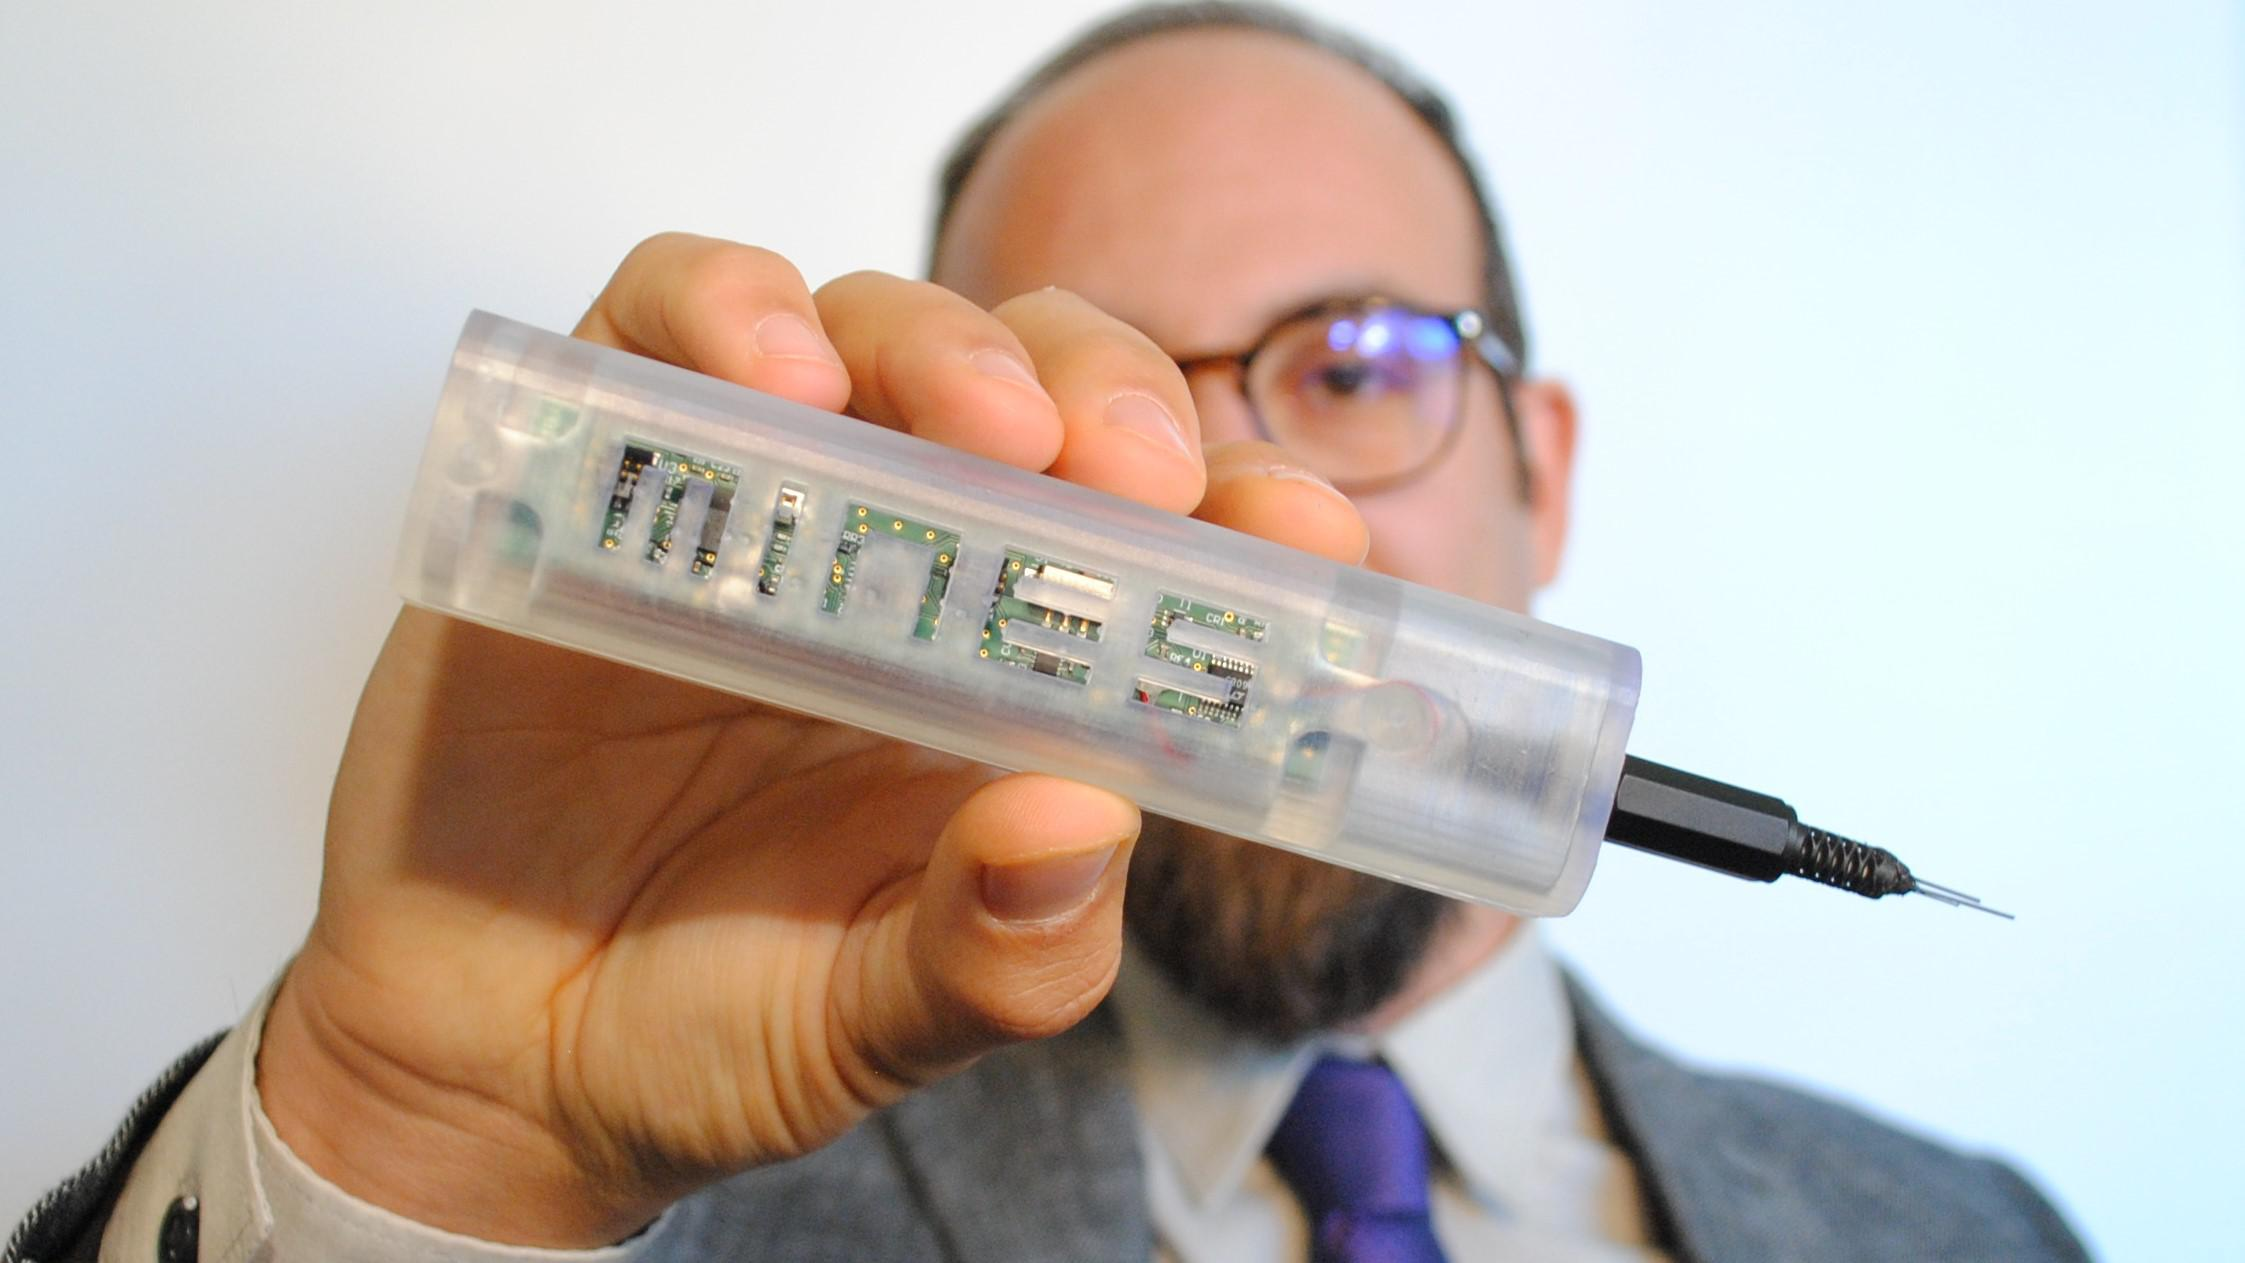 The battery-powered device contains propofol-detecting sensors in its needle, along with data-processing electronics in its main body